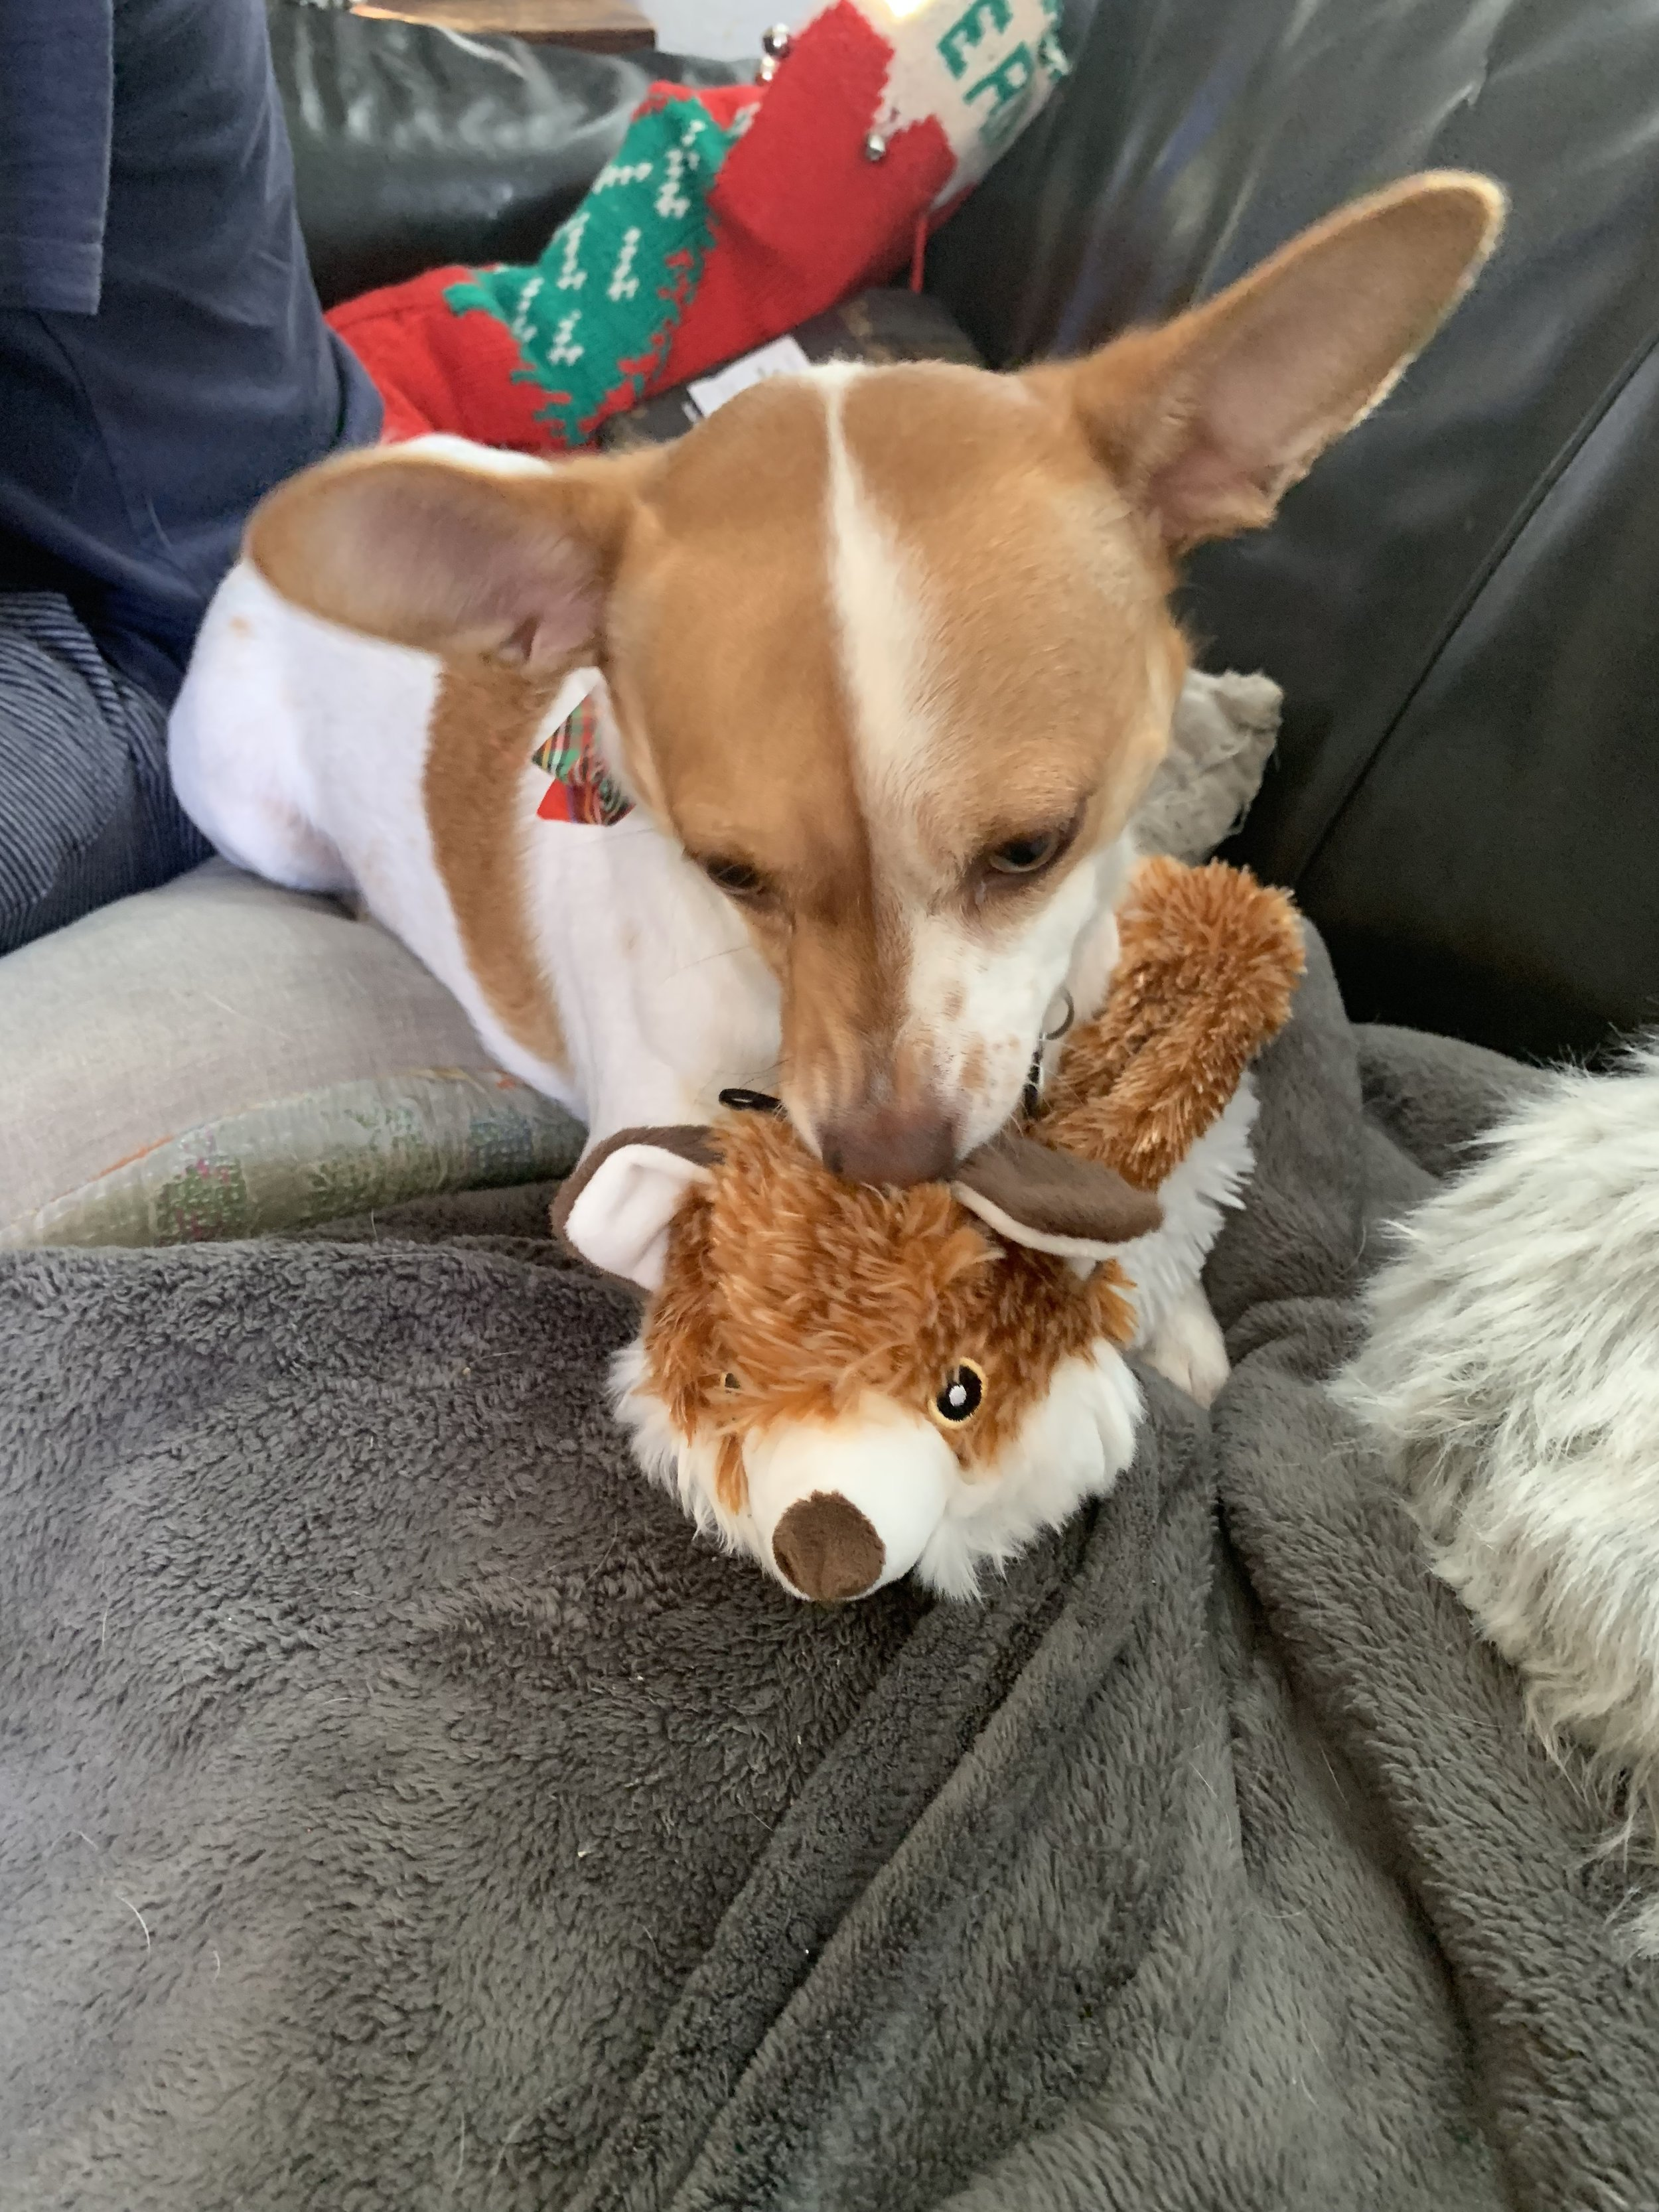 Hanging out with Scully was a huge part of my holiday! Here's her with her new fox toy. (She's wearing a bow tie).